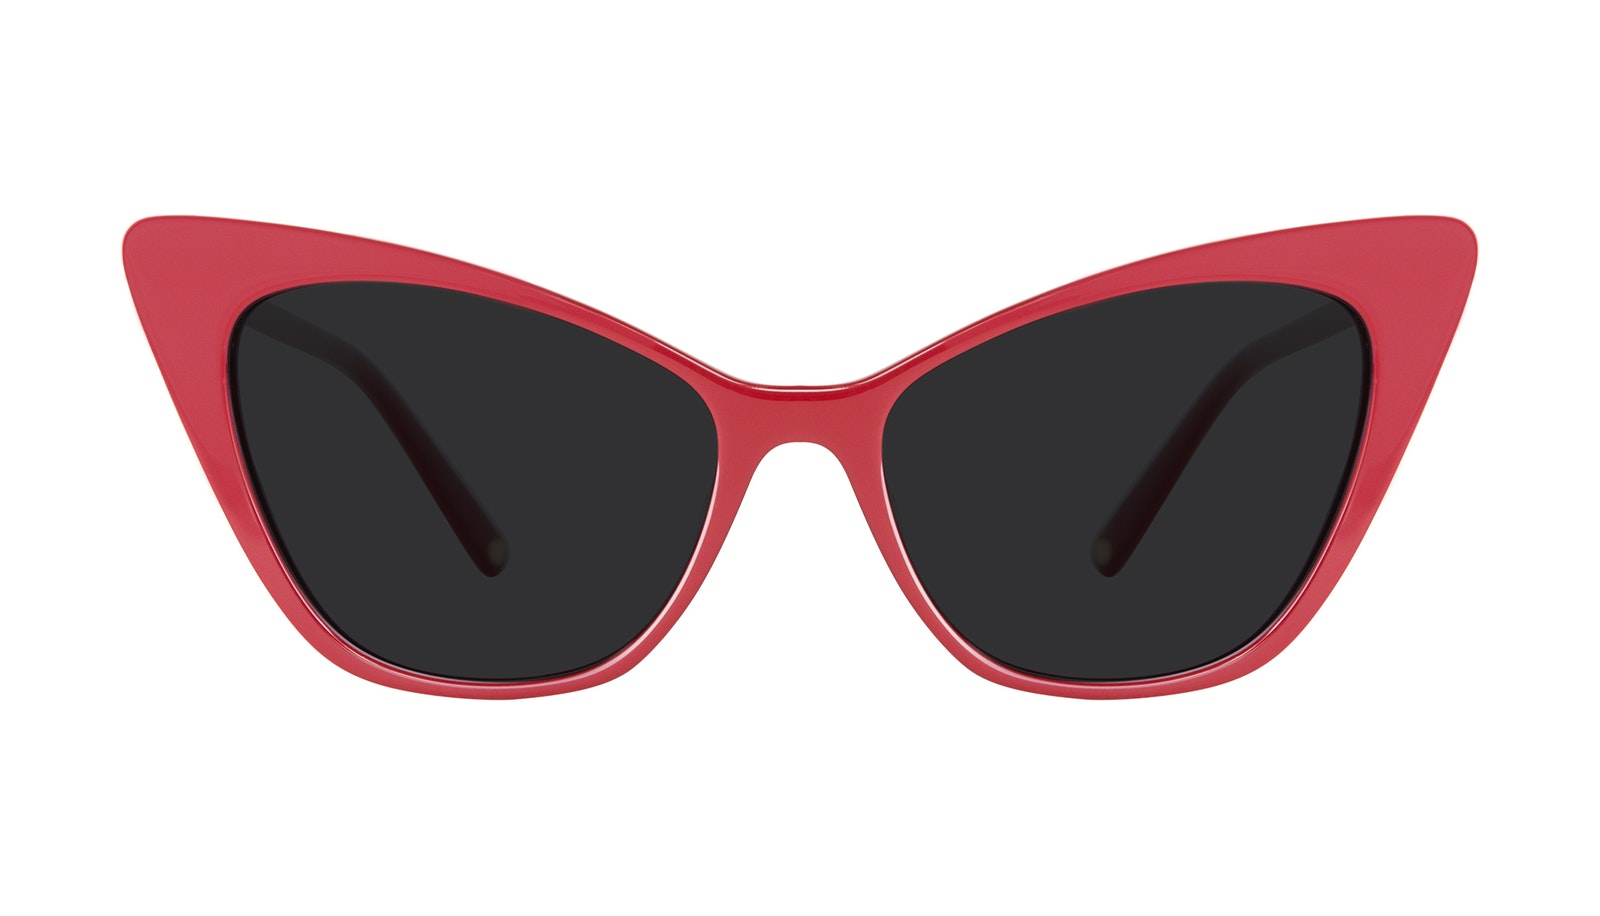 Affordable Fashion Glasses Cat Eye Sunglasses Women Keiko Lynn Ryder Red